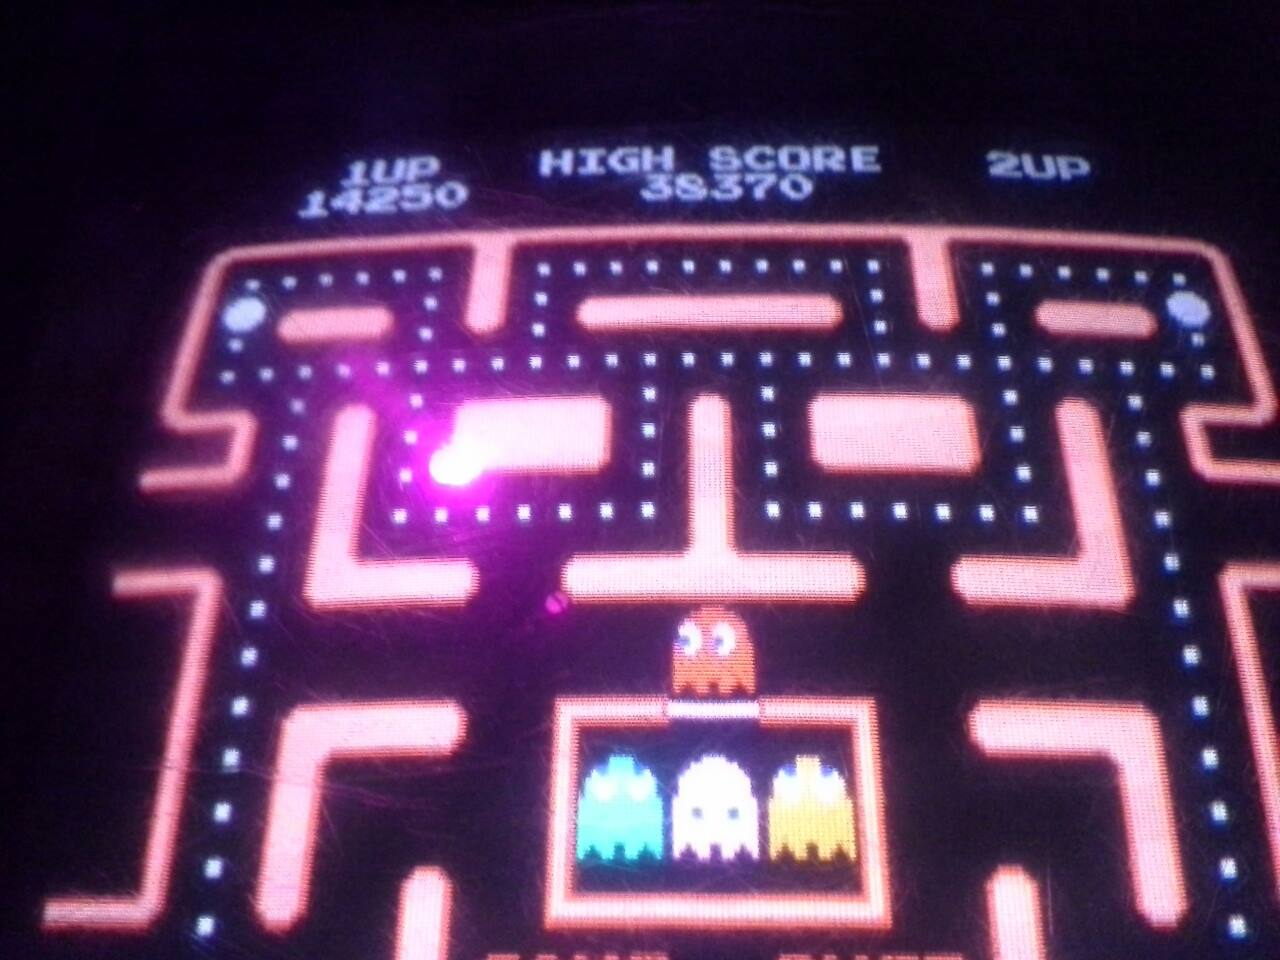 Ms. Pac-Man 14,250 points